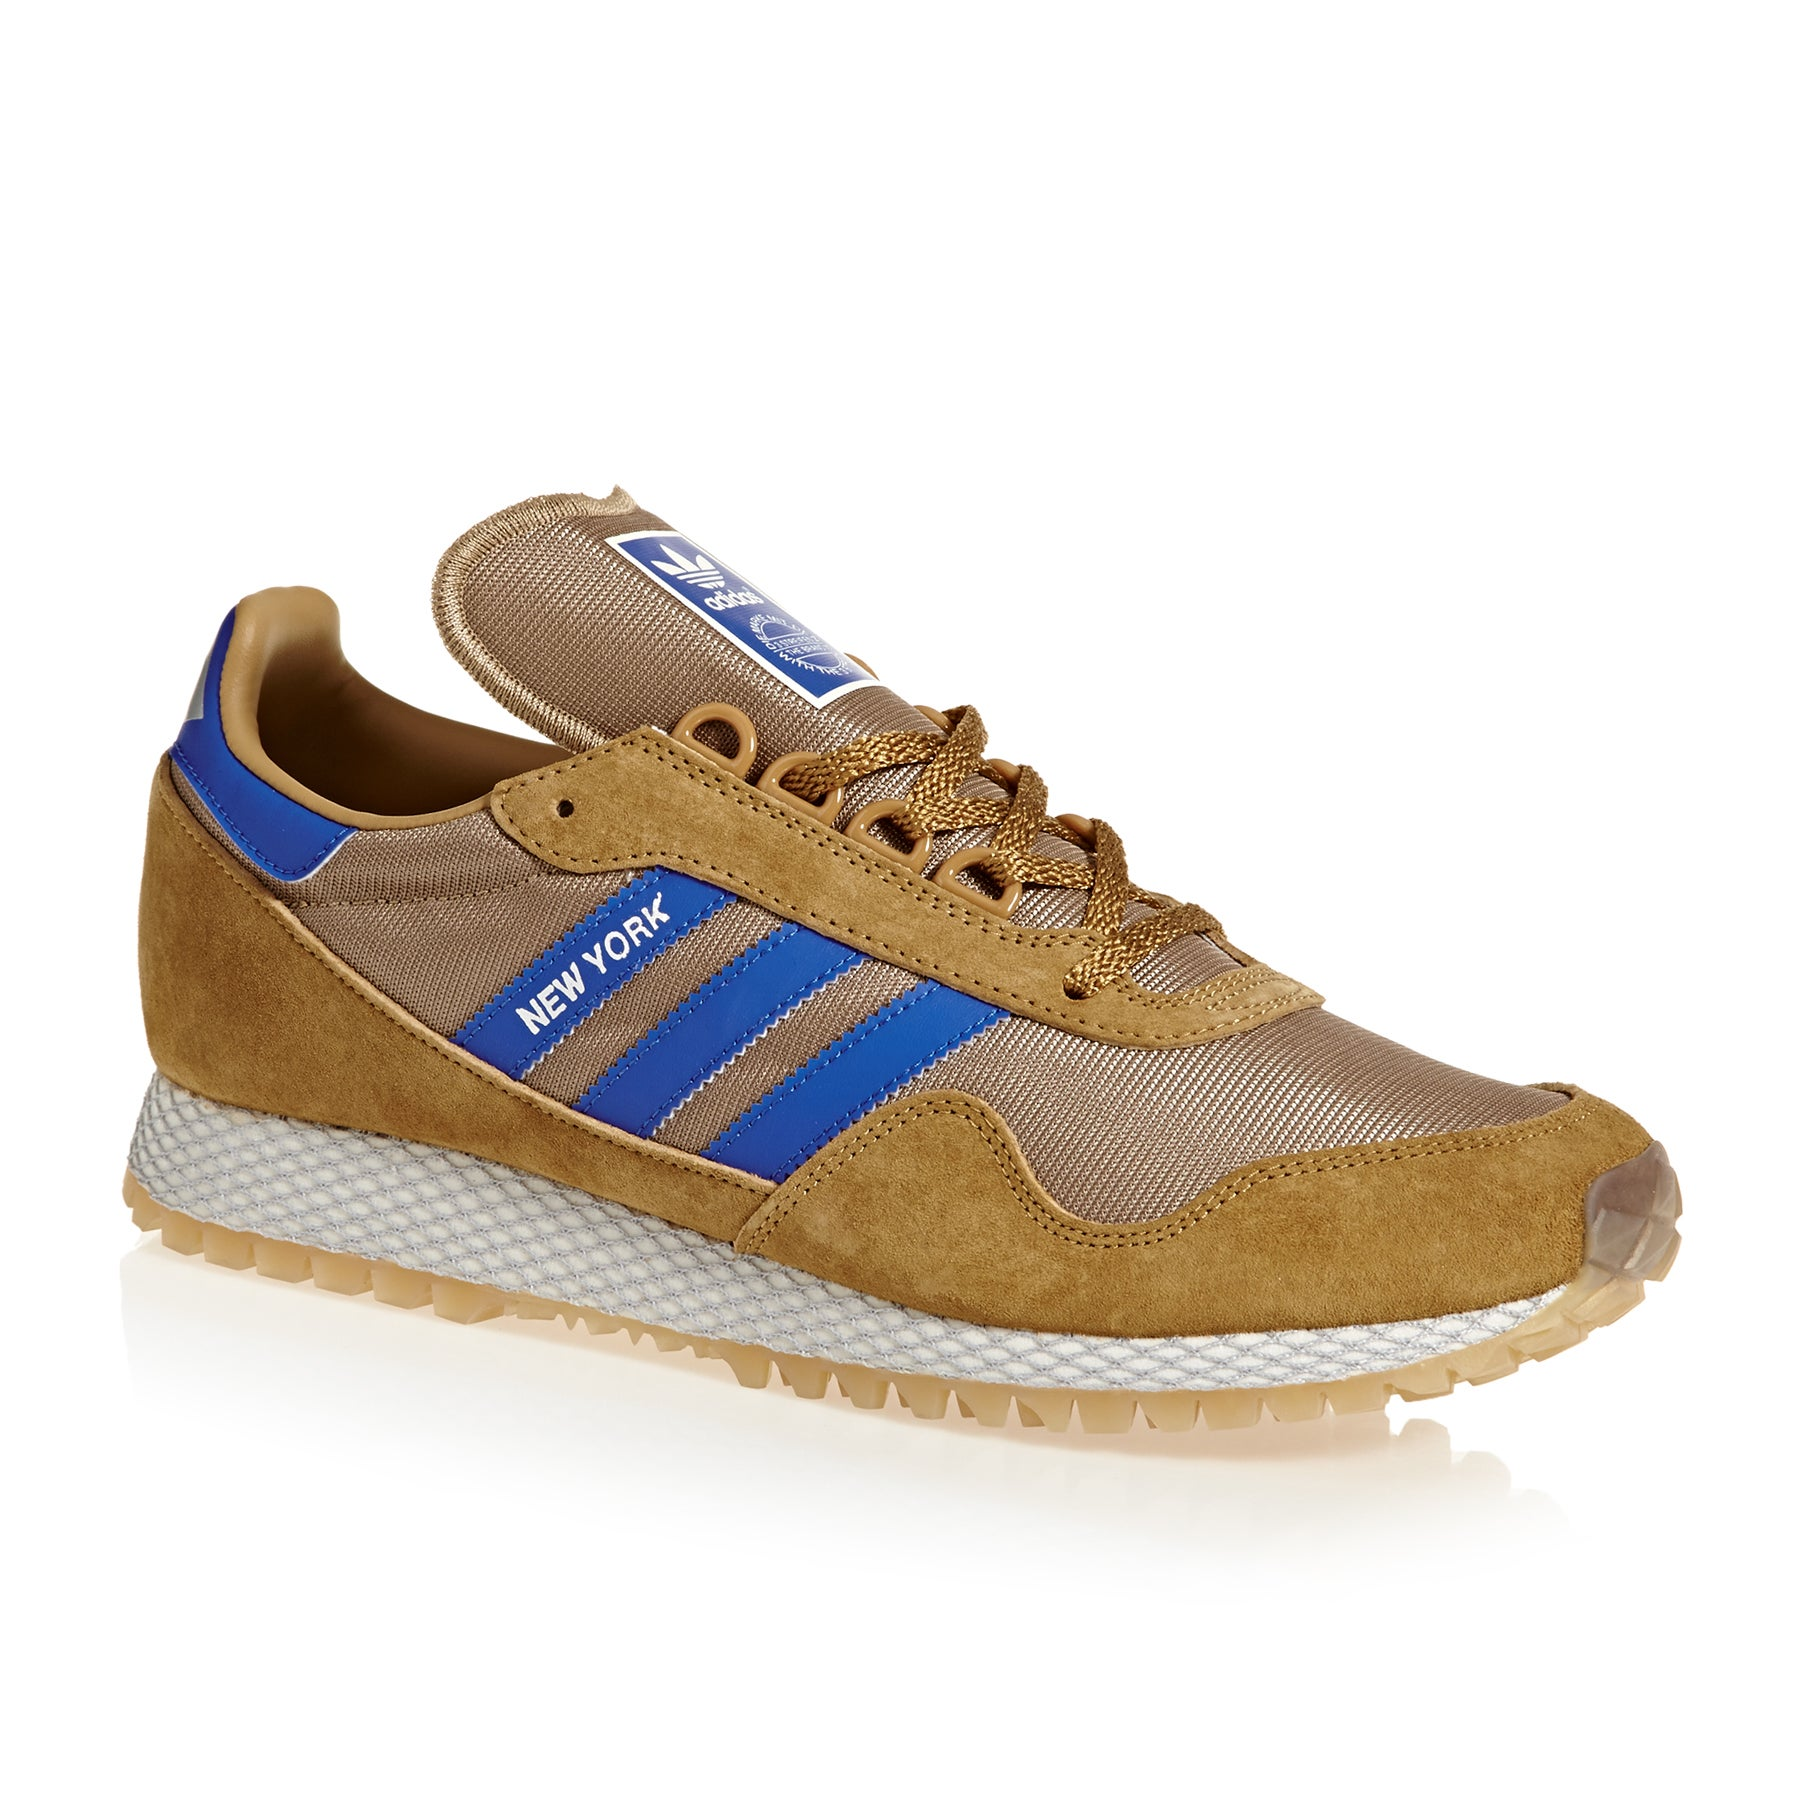 Chaussures Adidas Originals New York - Mesa/cardboard/gum 2